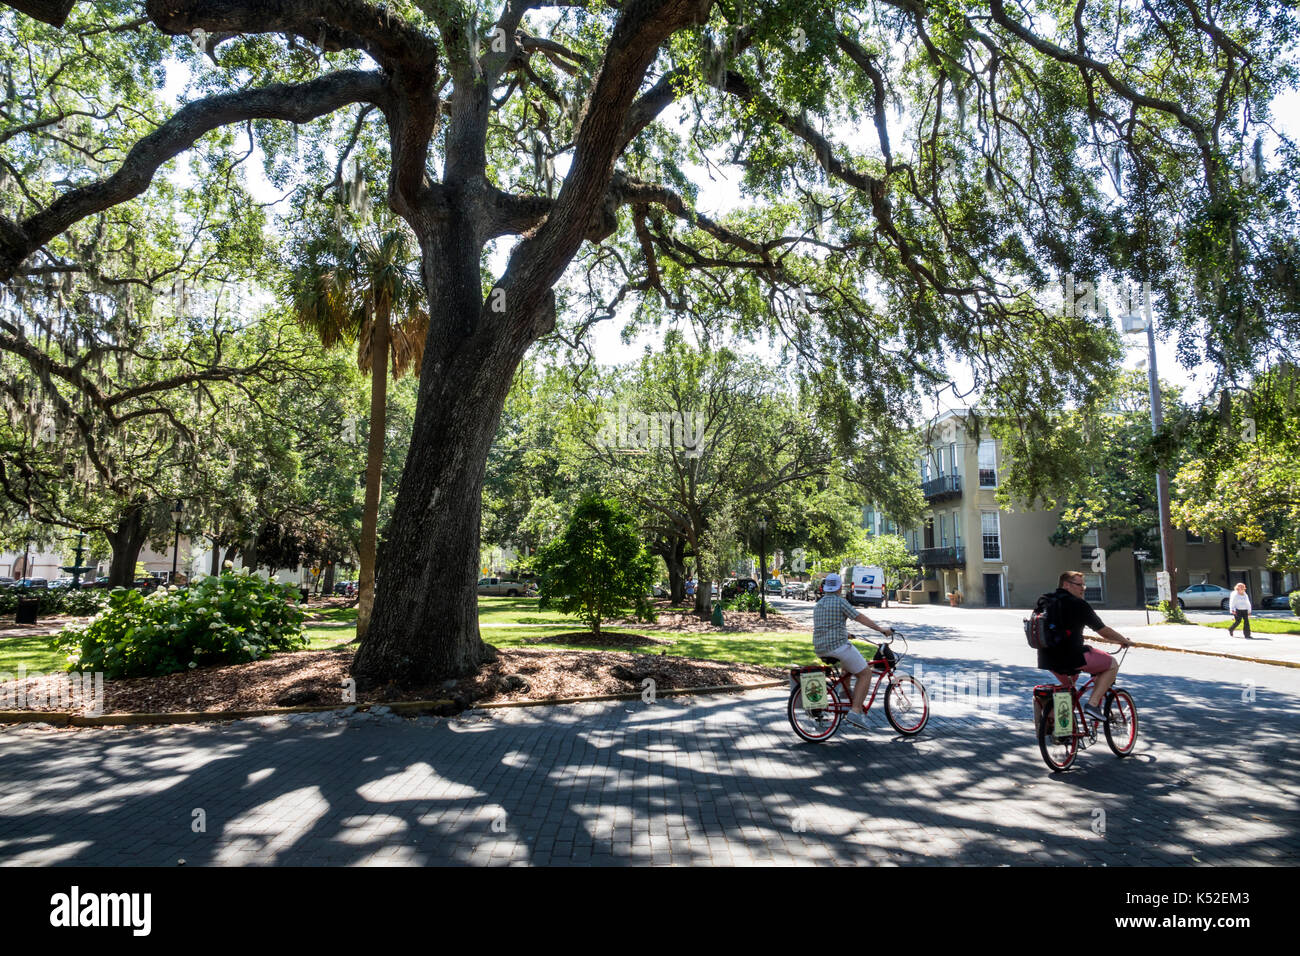 Savannah Georgia historic district Lafayette Square cyclist bicycle tree oak - Stock Image